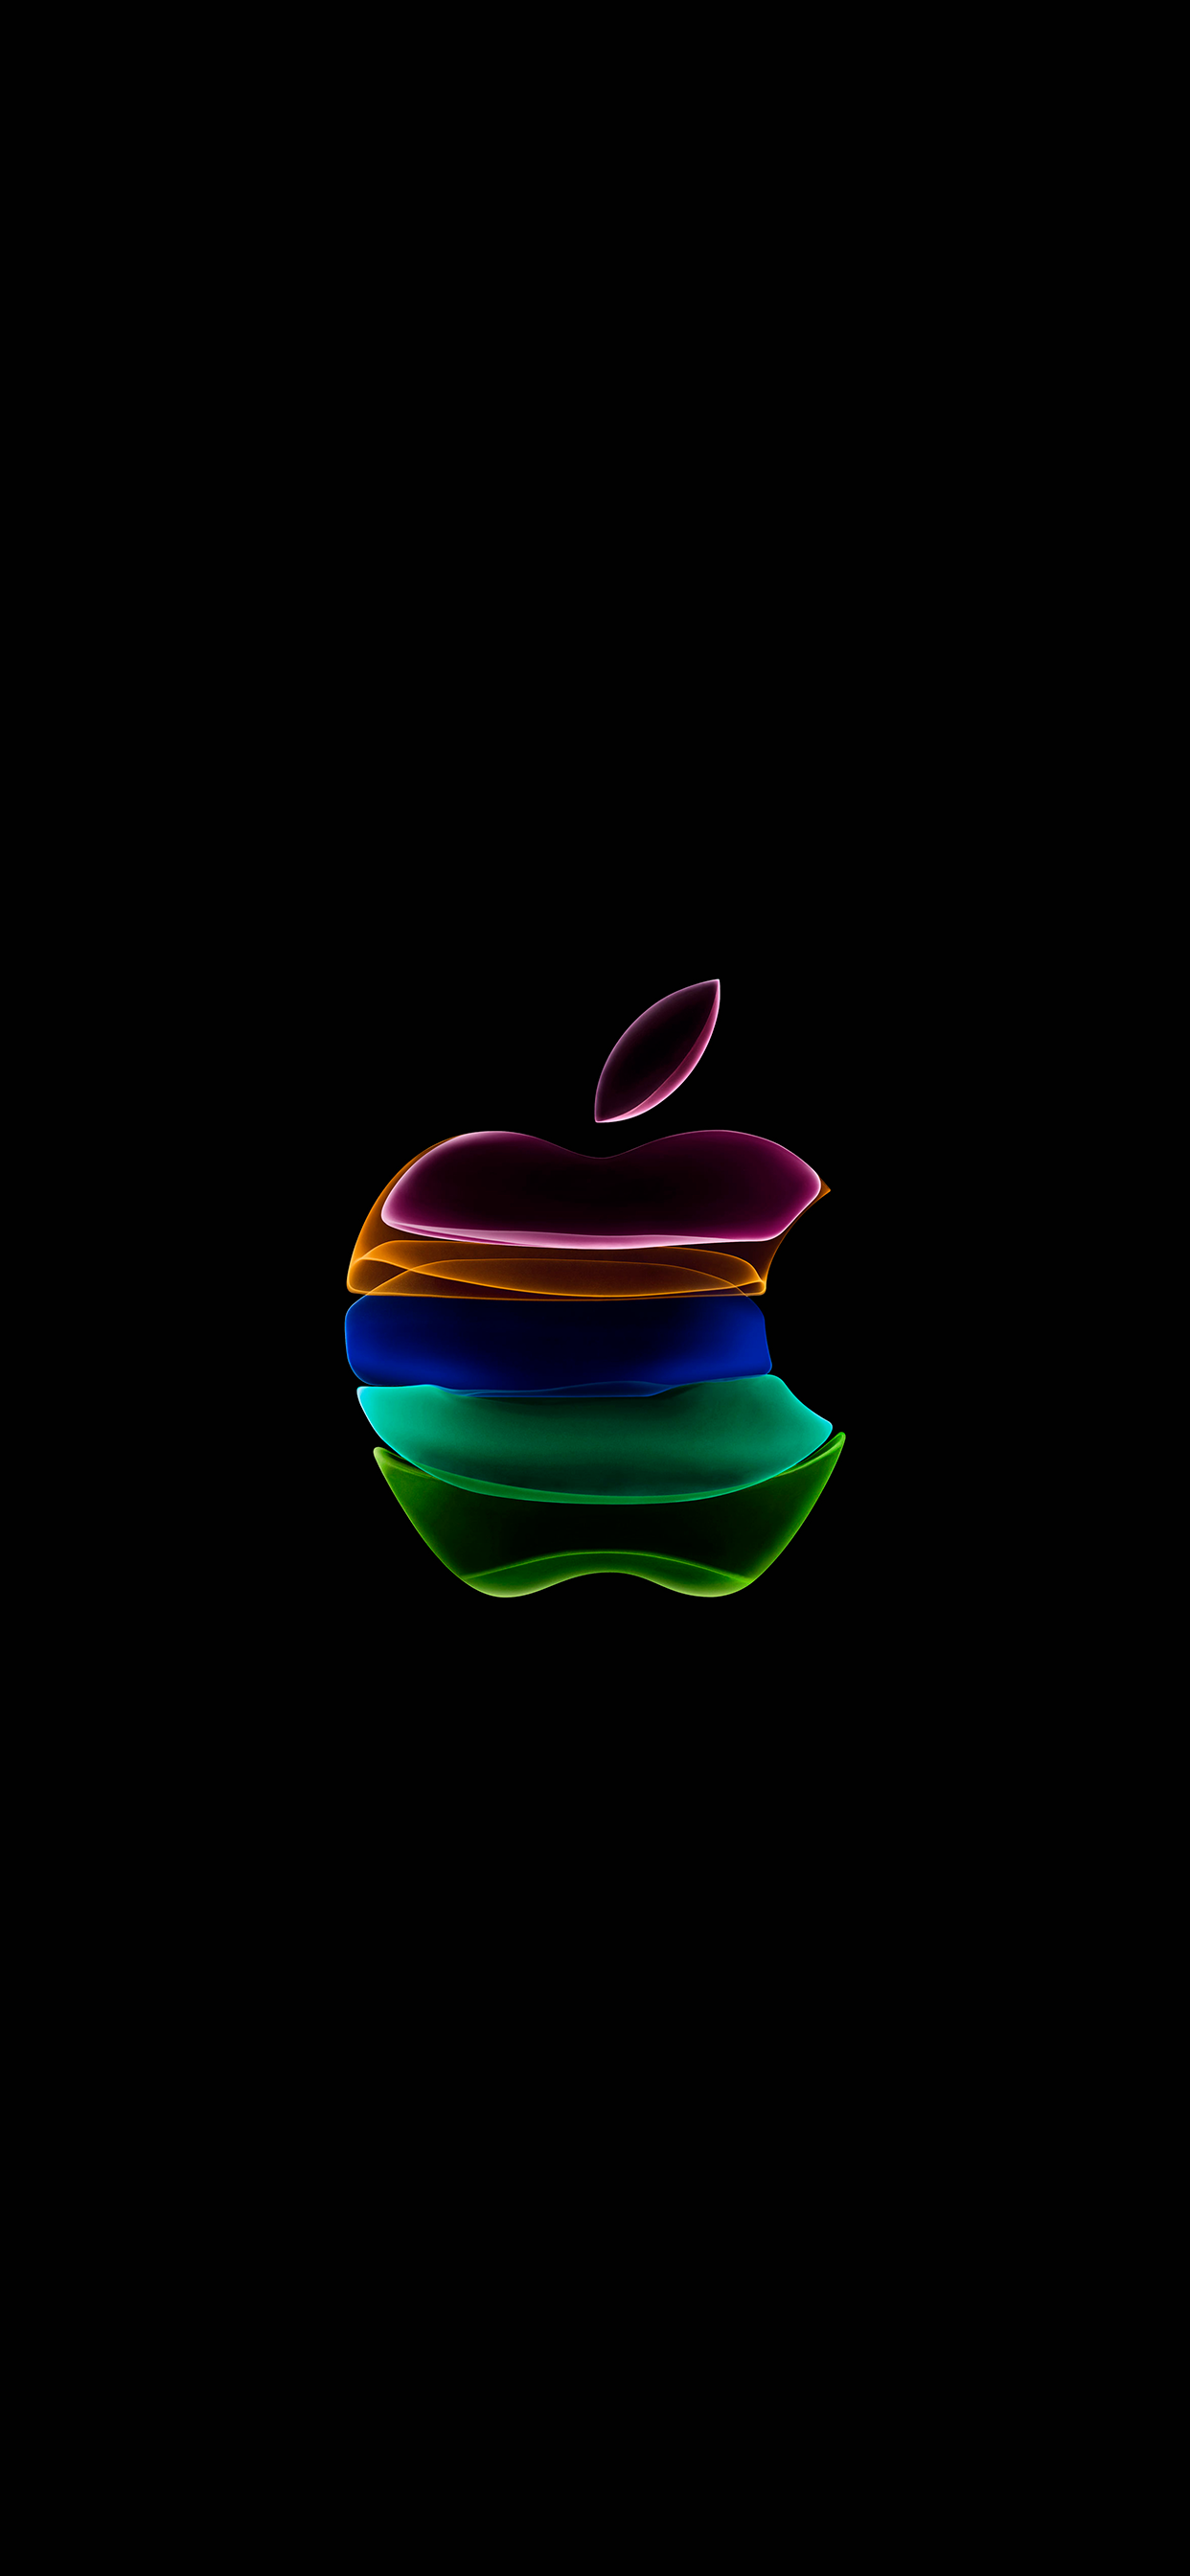 Apple Event Wallpapers For Iphone Ipad Apple Logo Wallpaper Iphone Apple Logo Wallpaper Iphone Homescreen Wallpaper